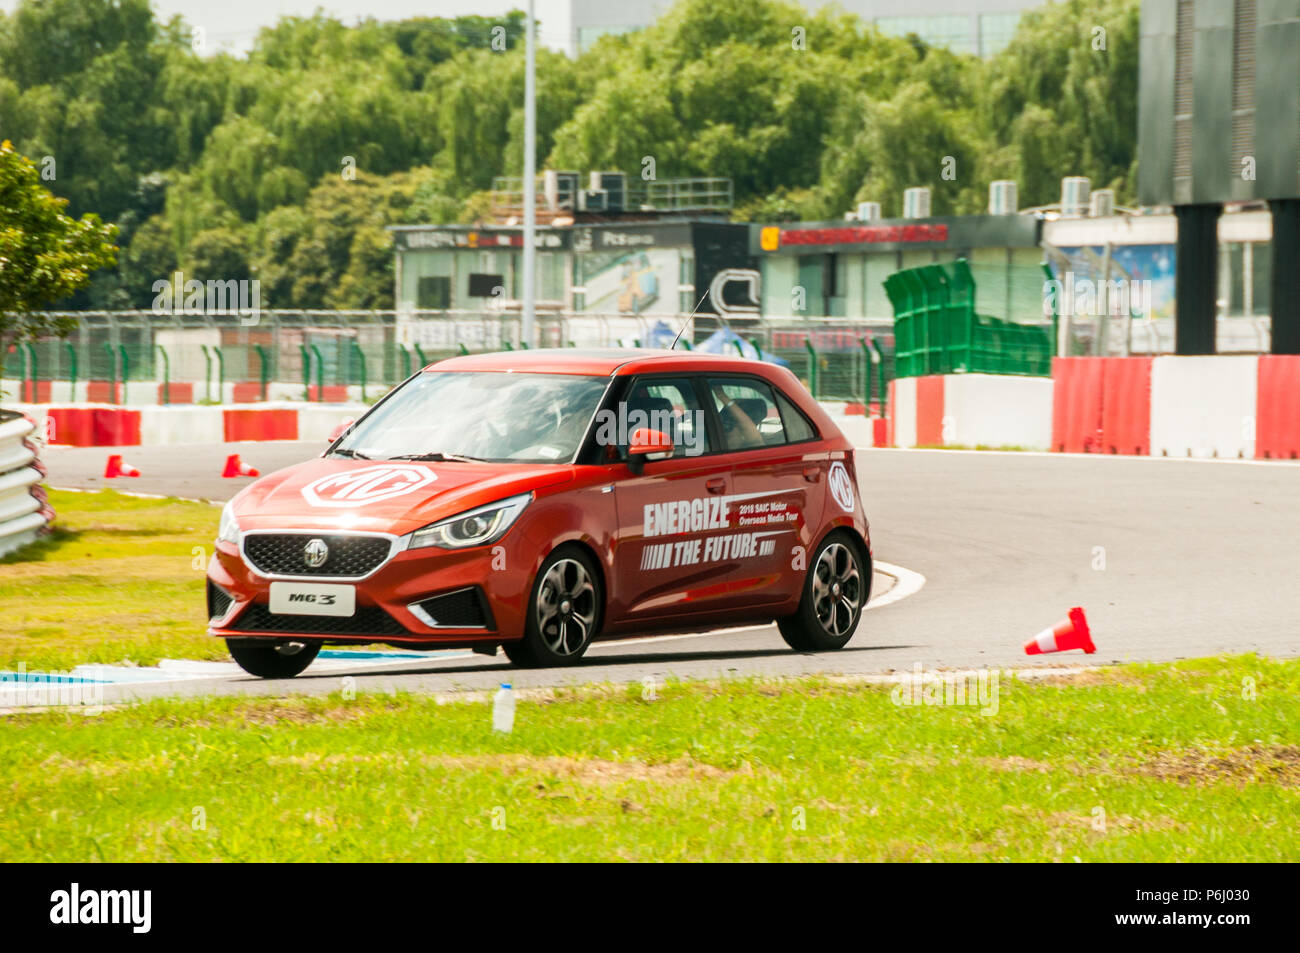 Late life update MG 3 from SAIC being driven on the Tianma Race Circuit in Shanghai at an overseas media event. Stock Photo